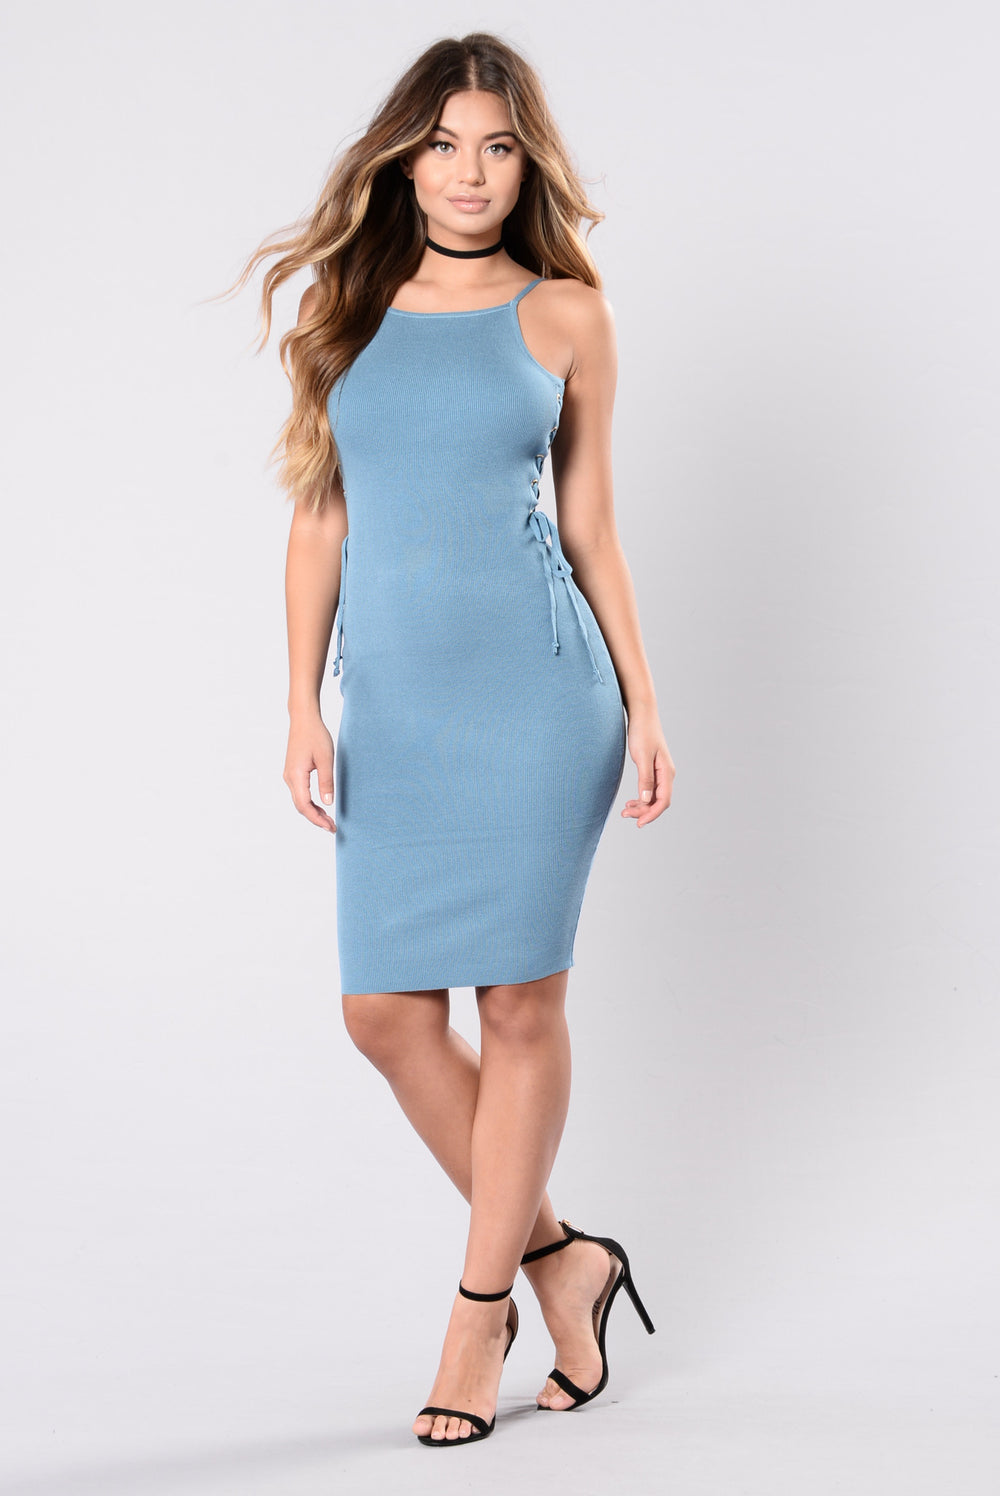 Come Out To Play Dress - Niagara Blue